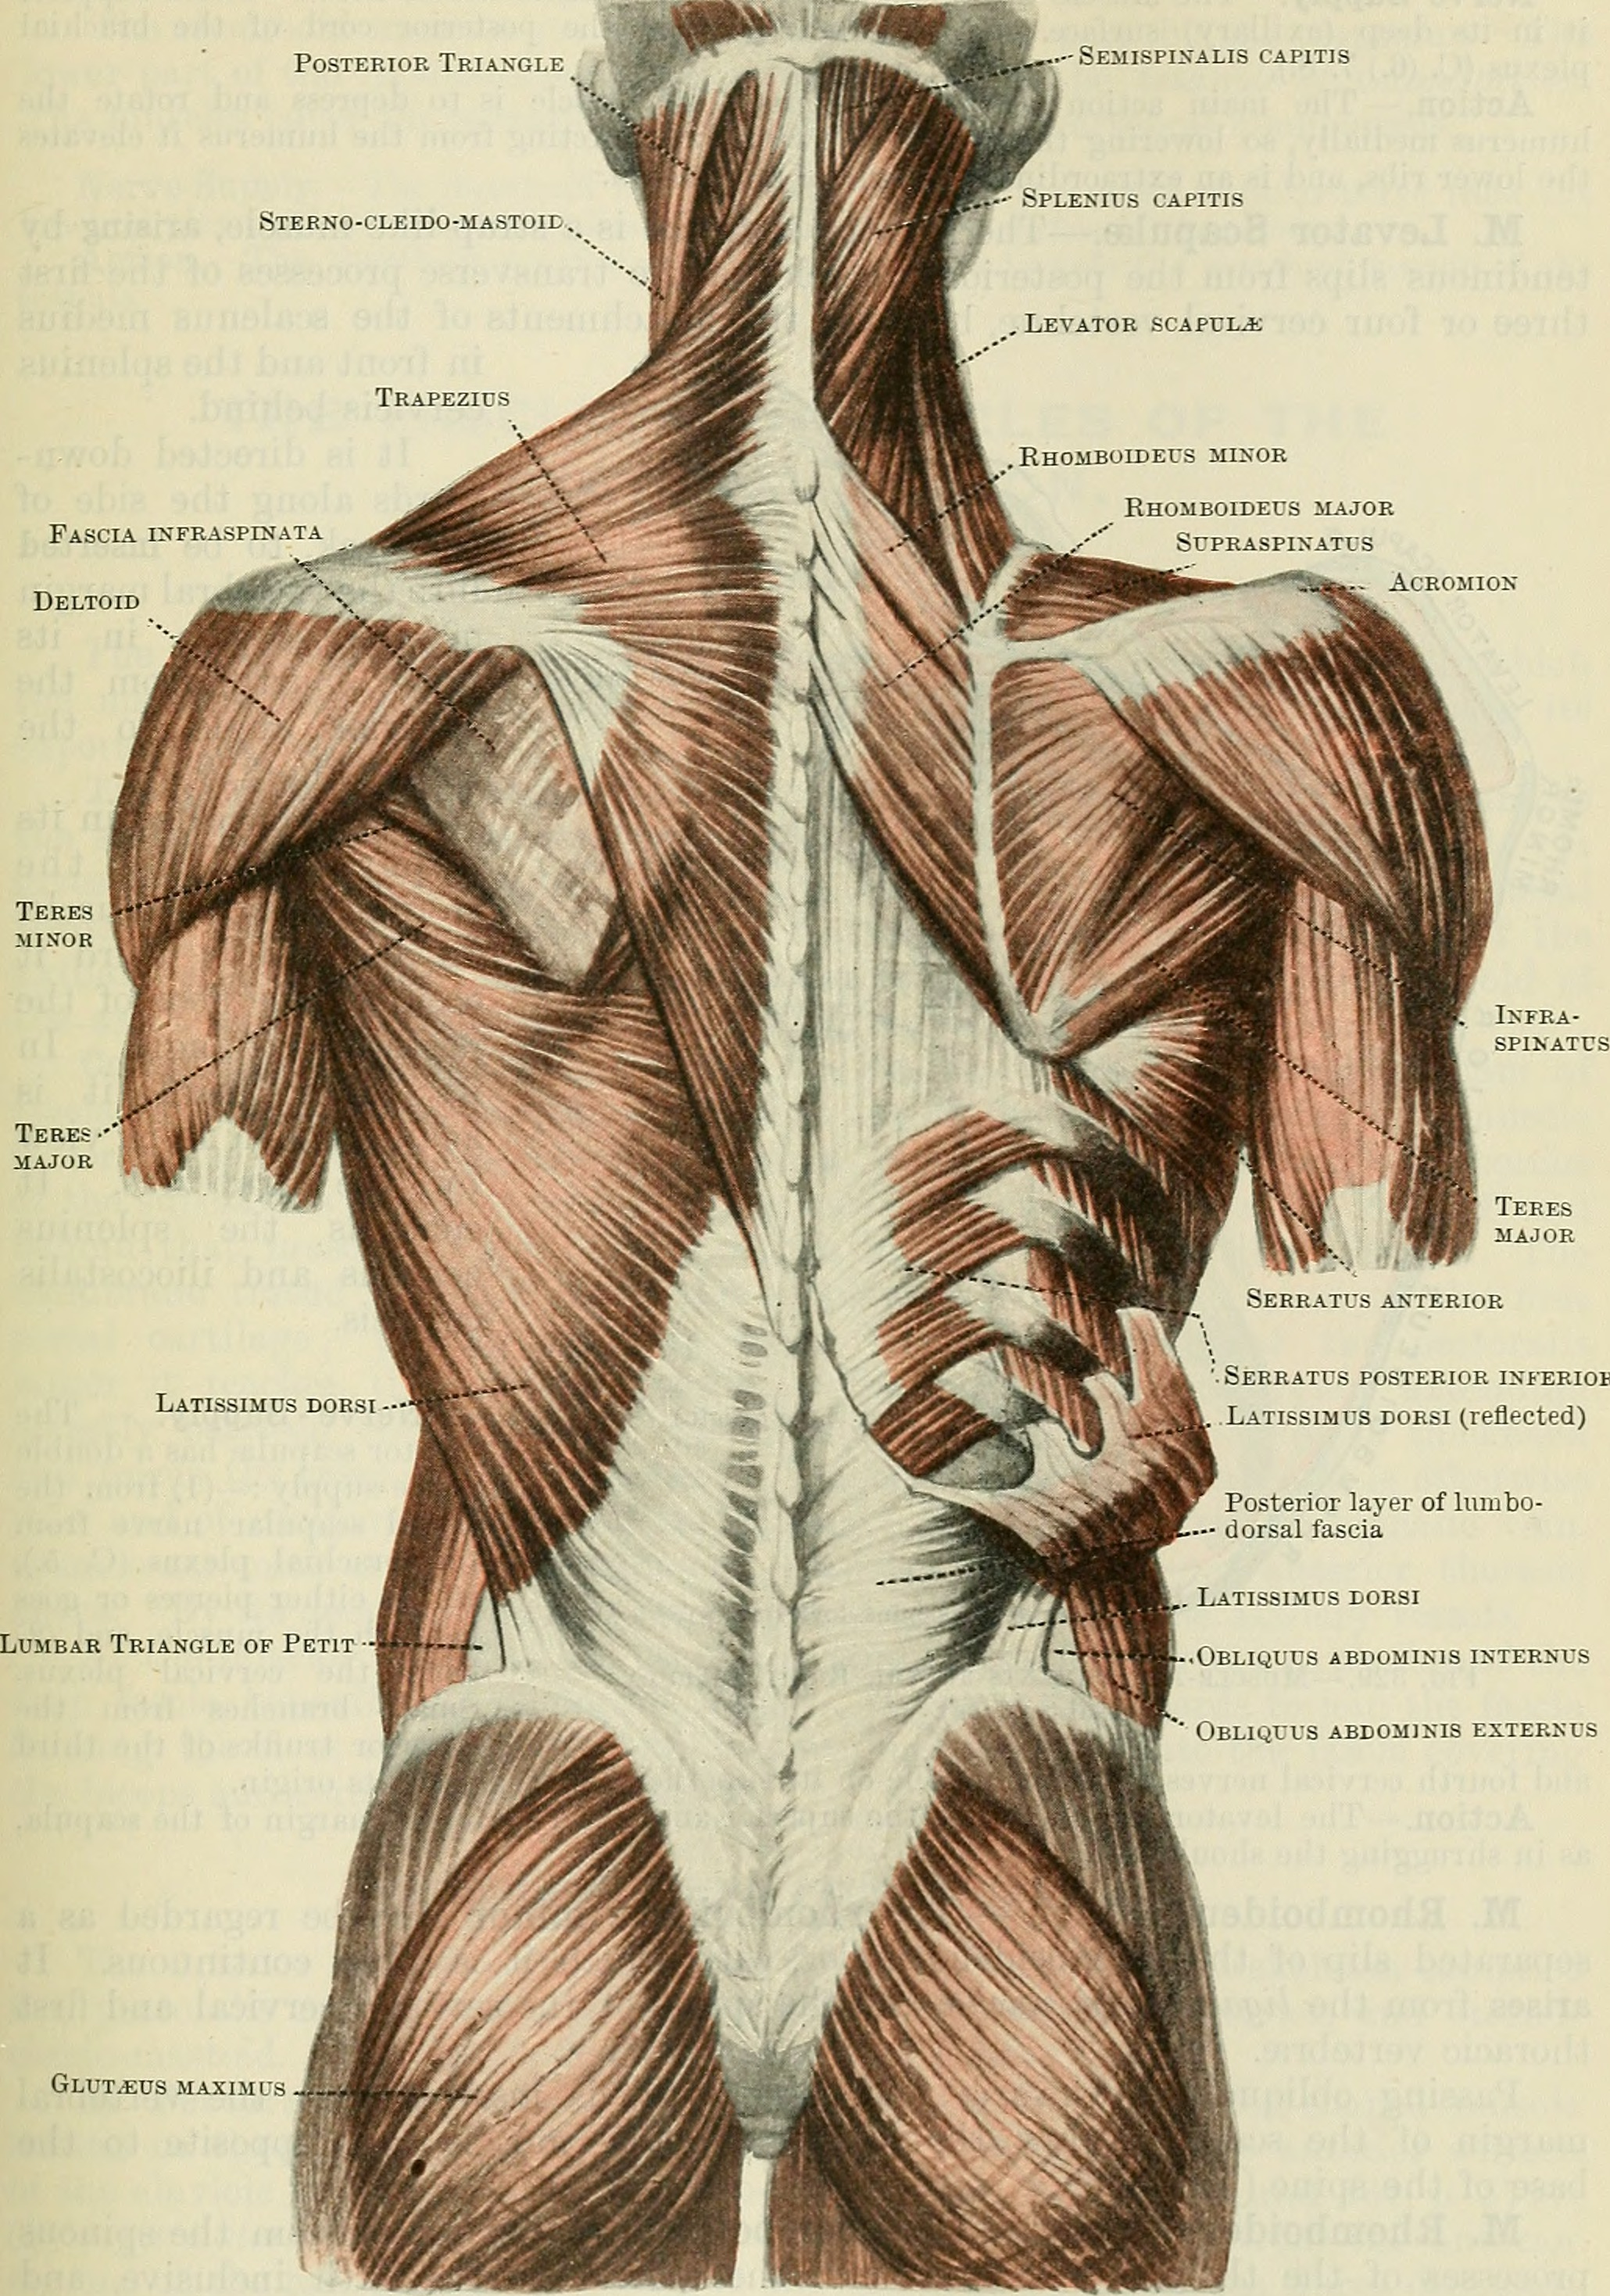 Home - Anatomy & Physiology - LibGuides at Los Angeles Pierce College